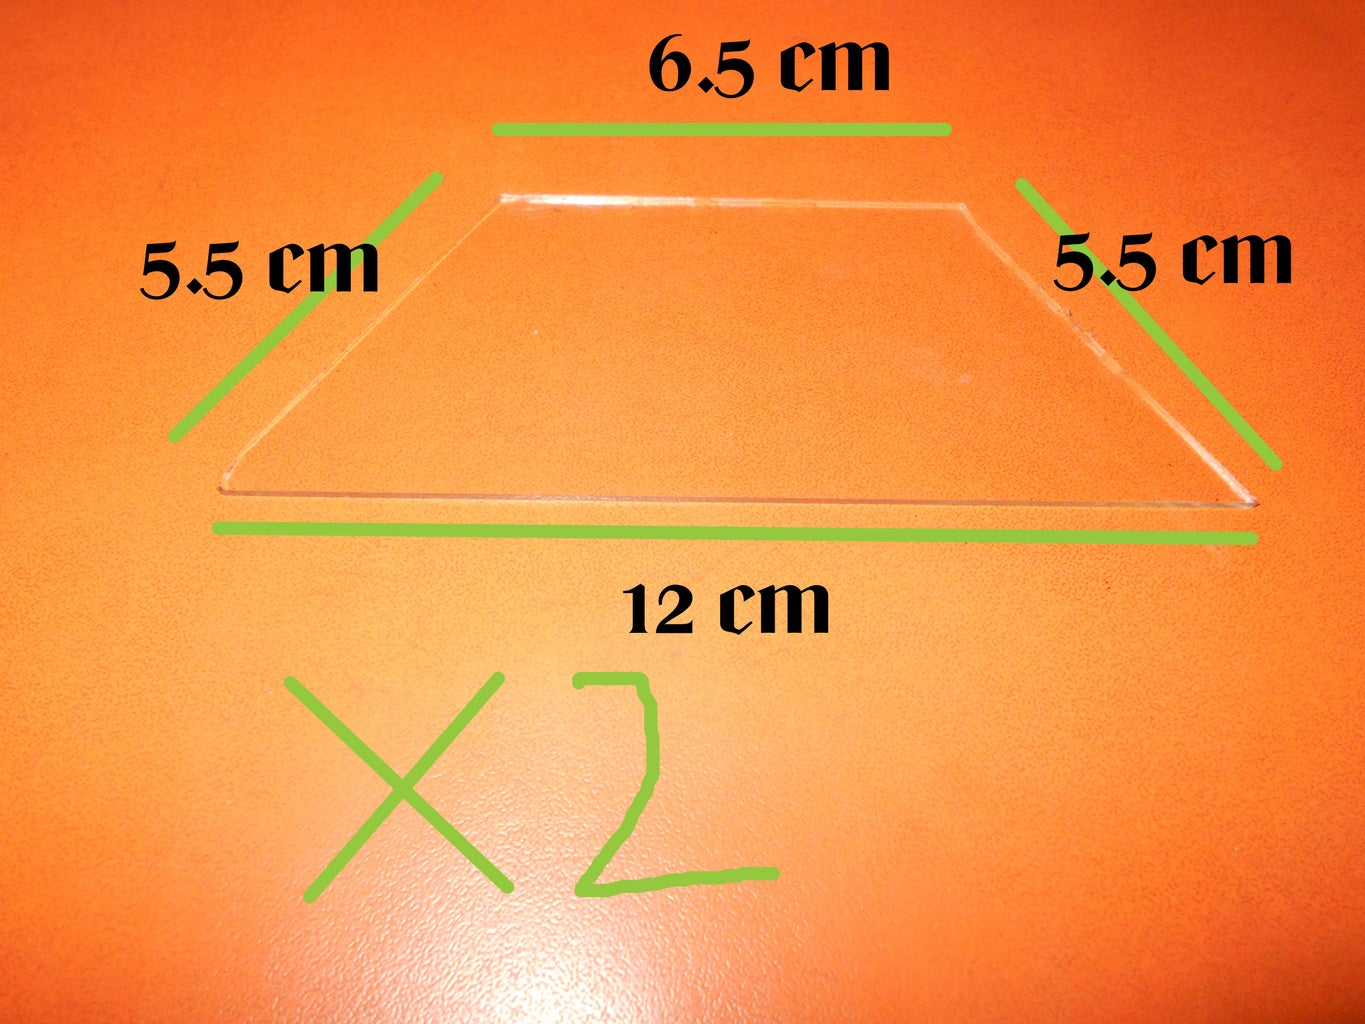 Gathering Glass According to Given Size